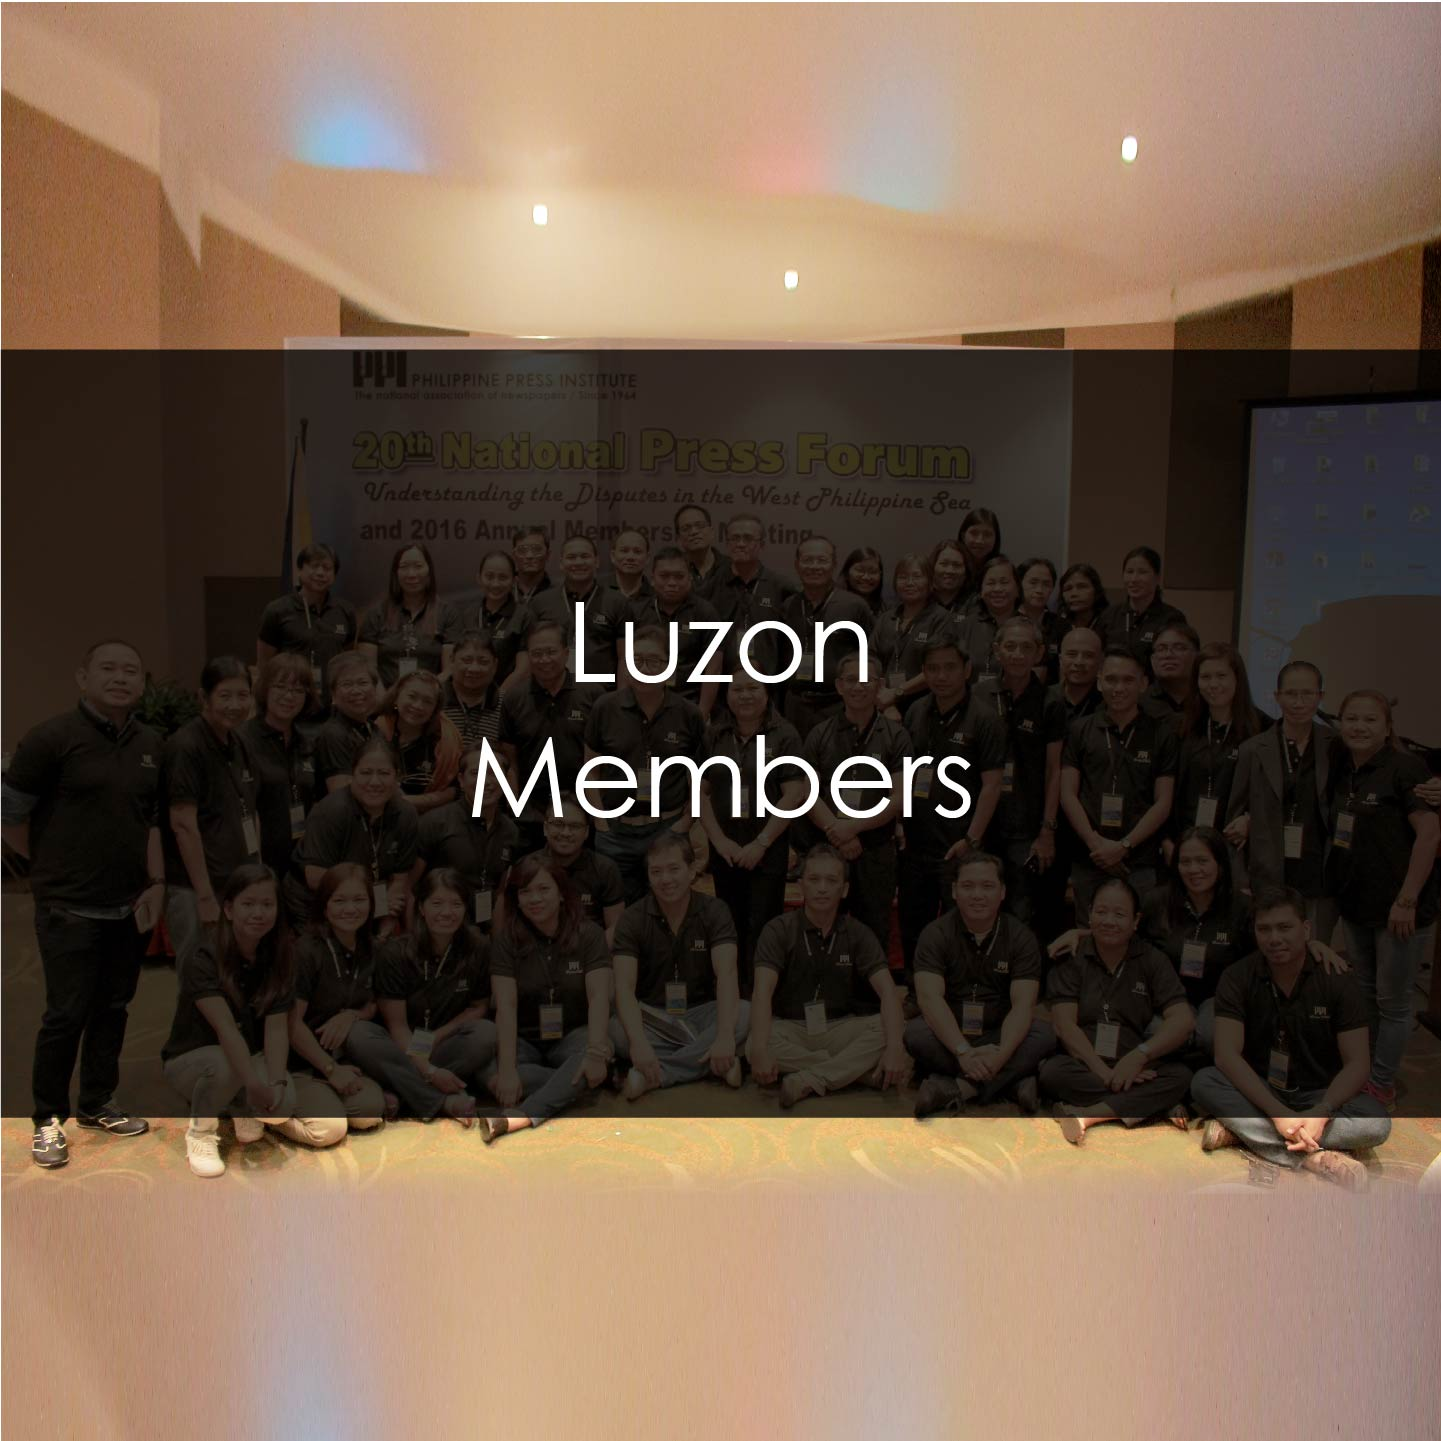 PPI Luzon Members Thumbnail